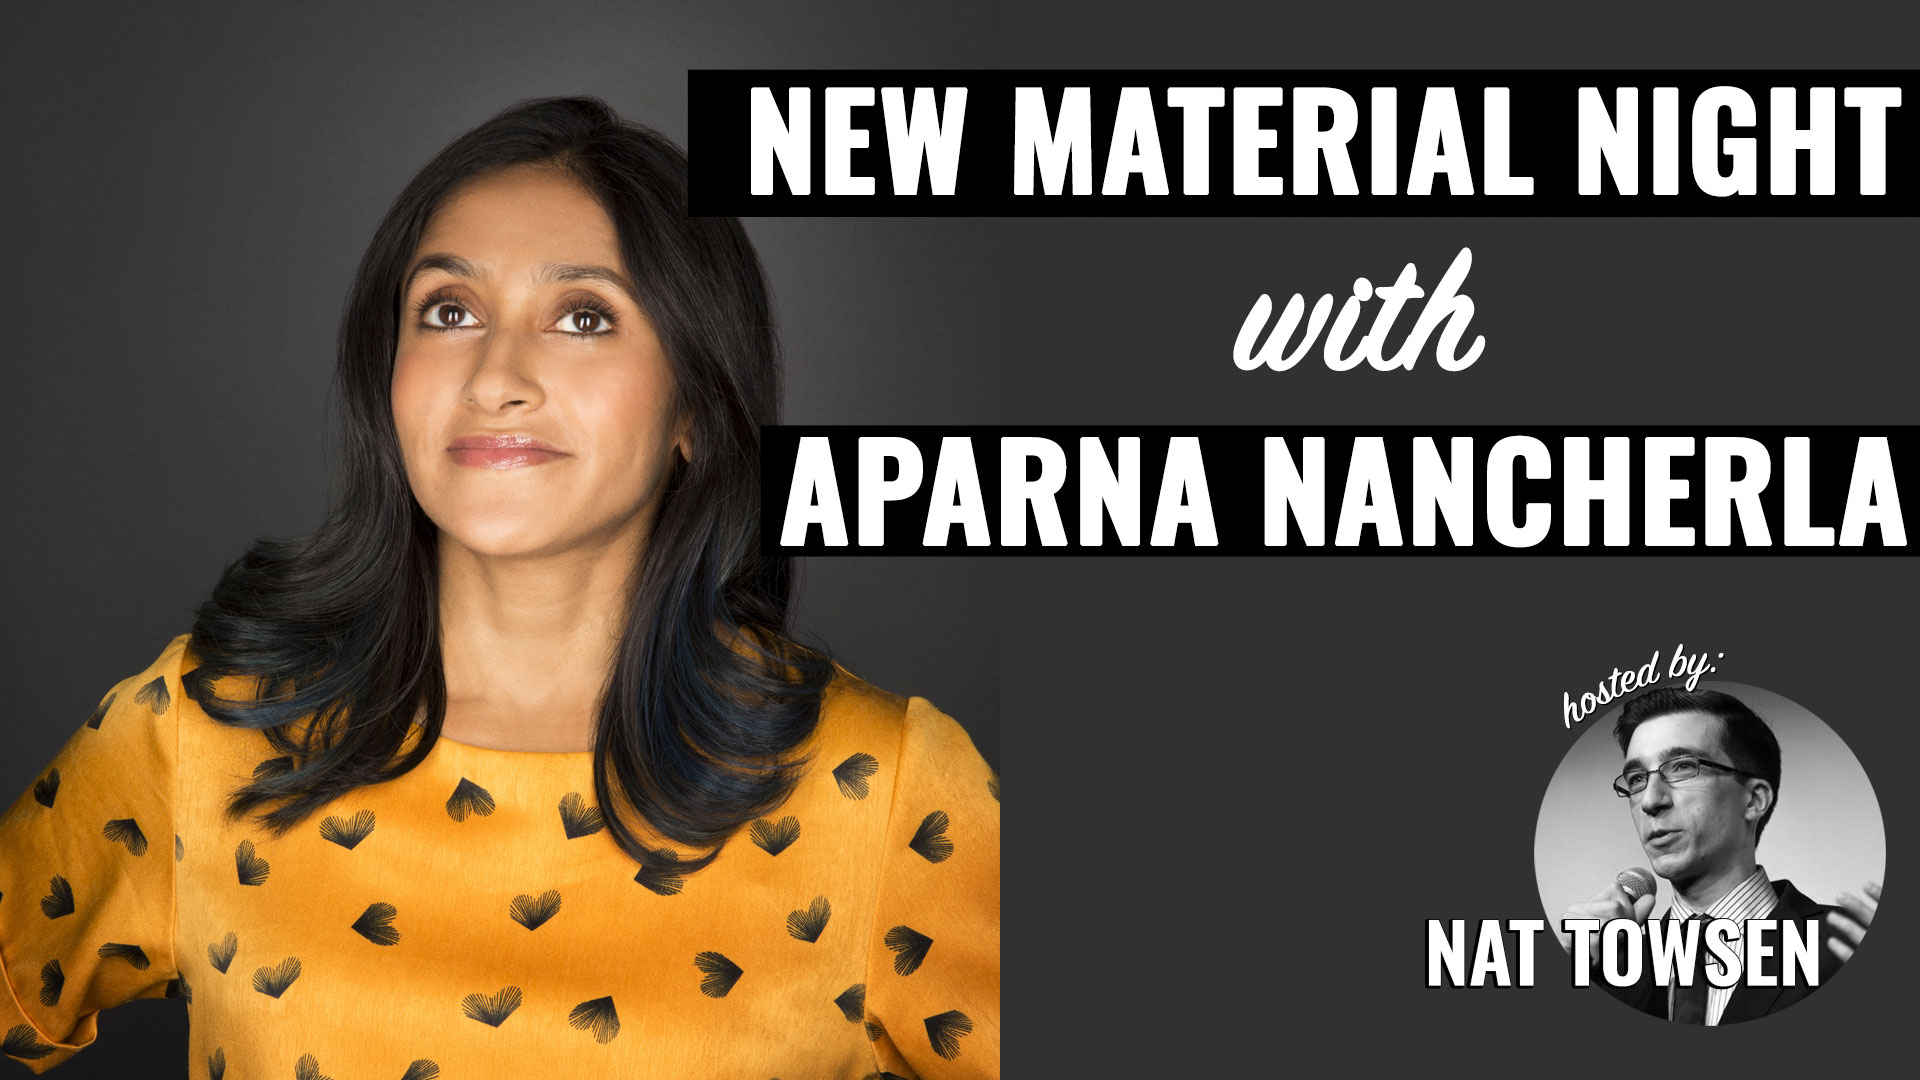 New Material Night with Aparna Nancherla & Nat Towsen